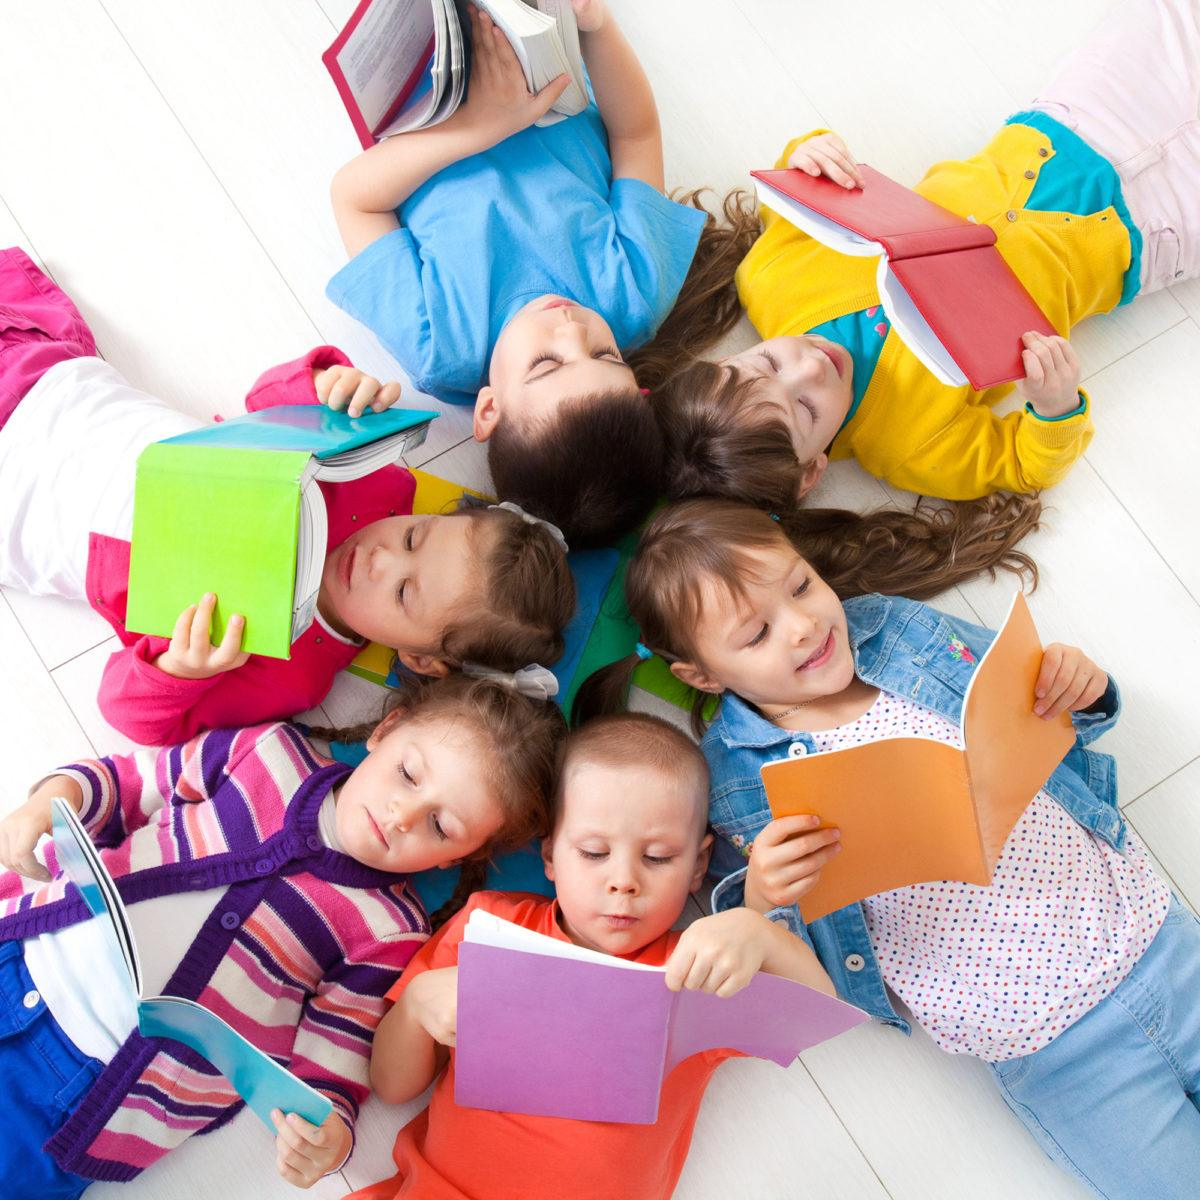 Best Travel Books for Children According to Travel Experts & Their Kids